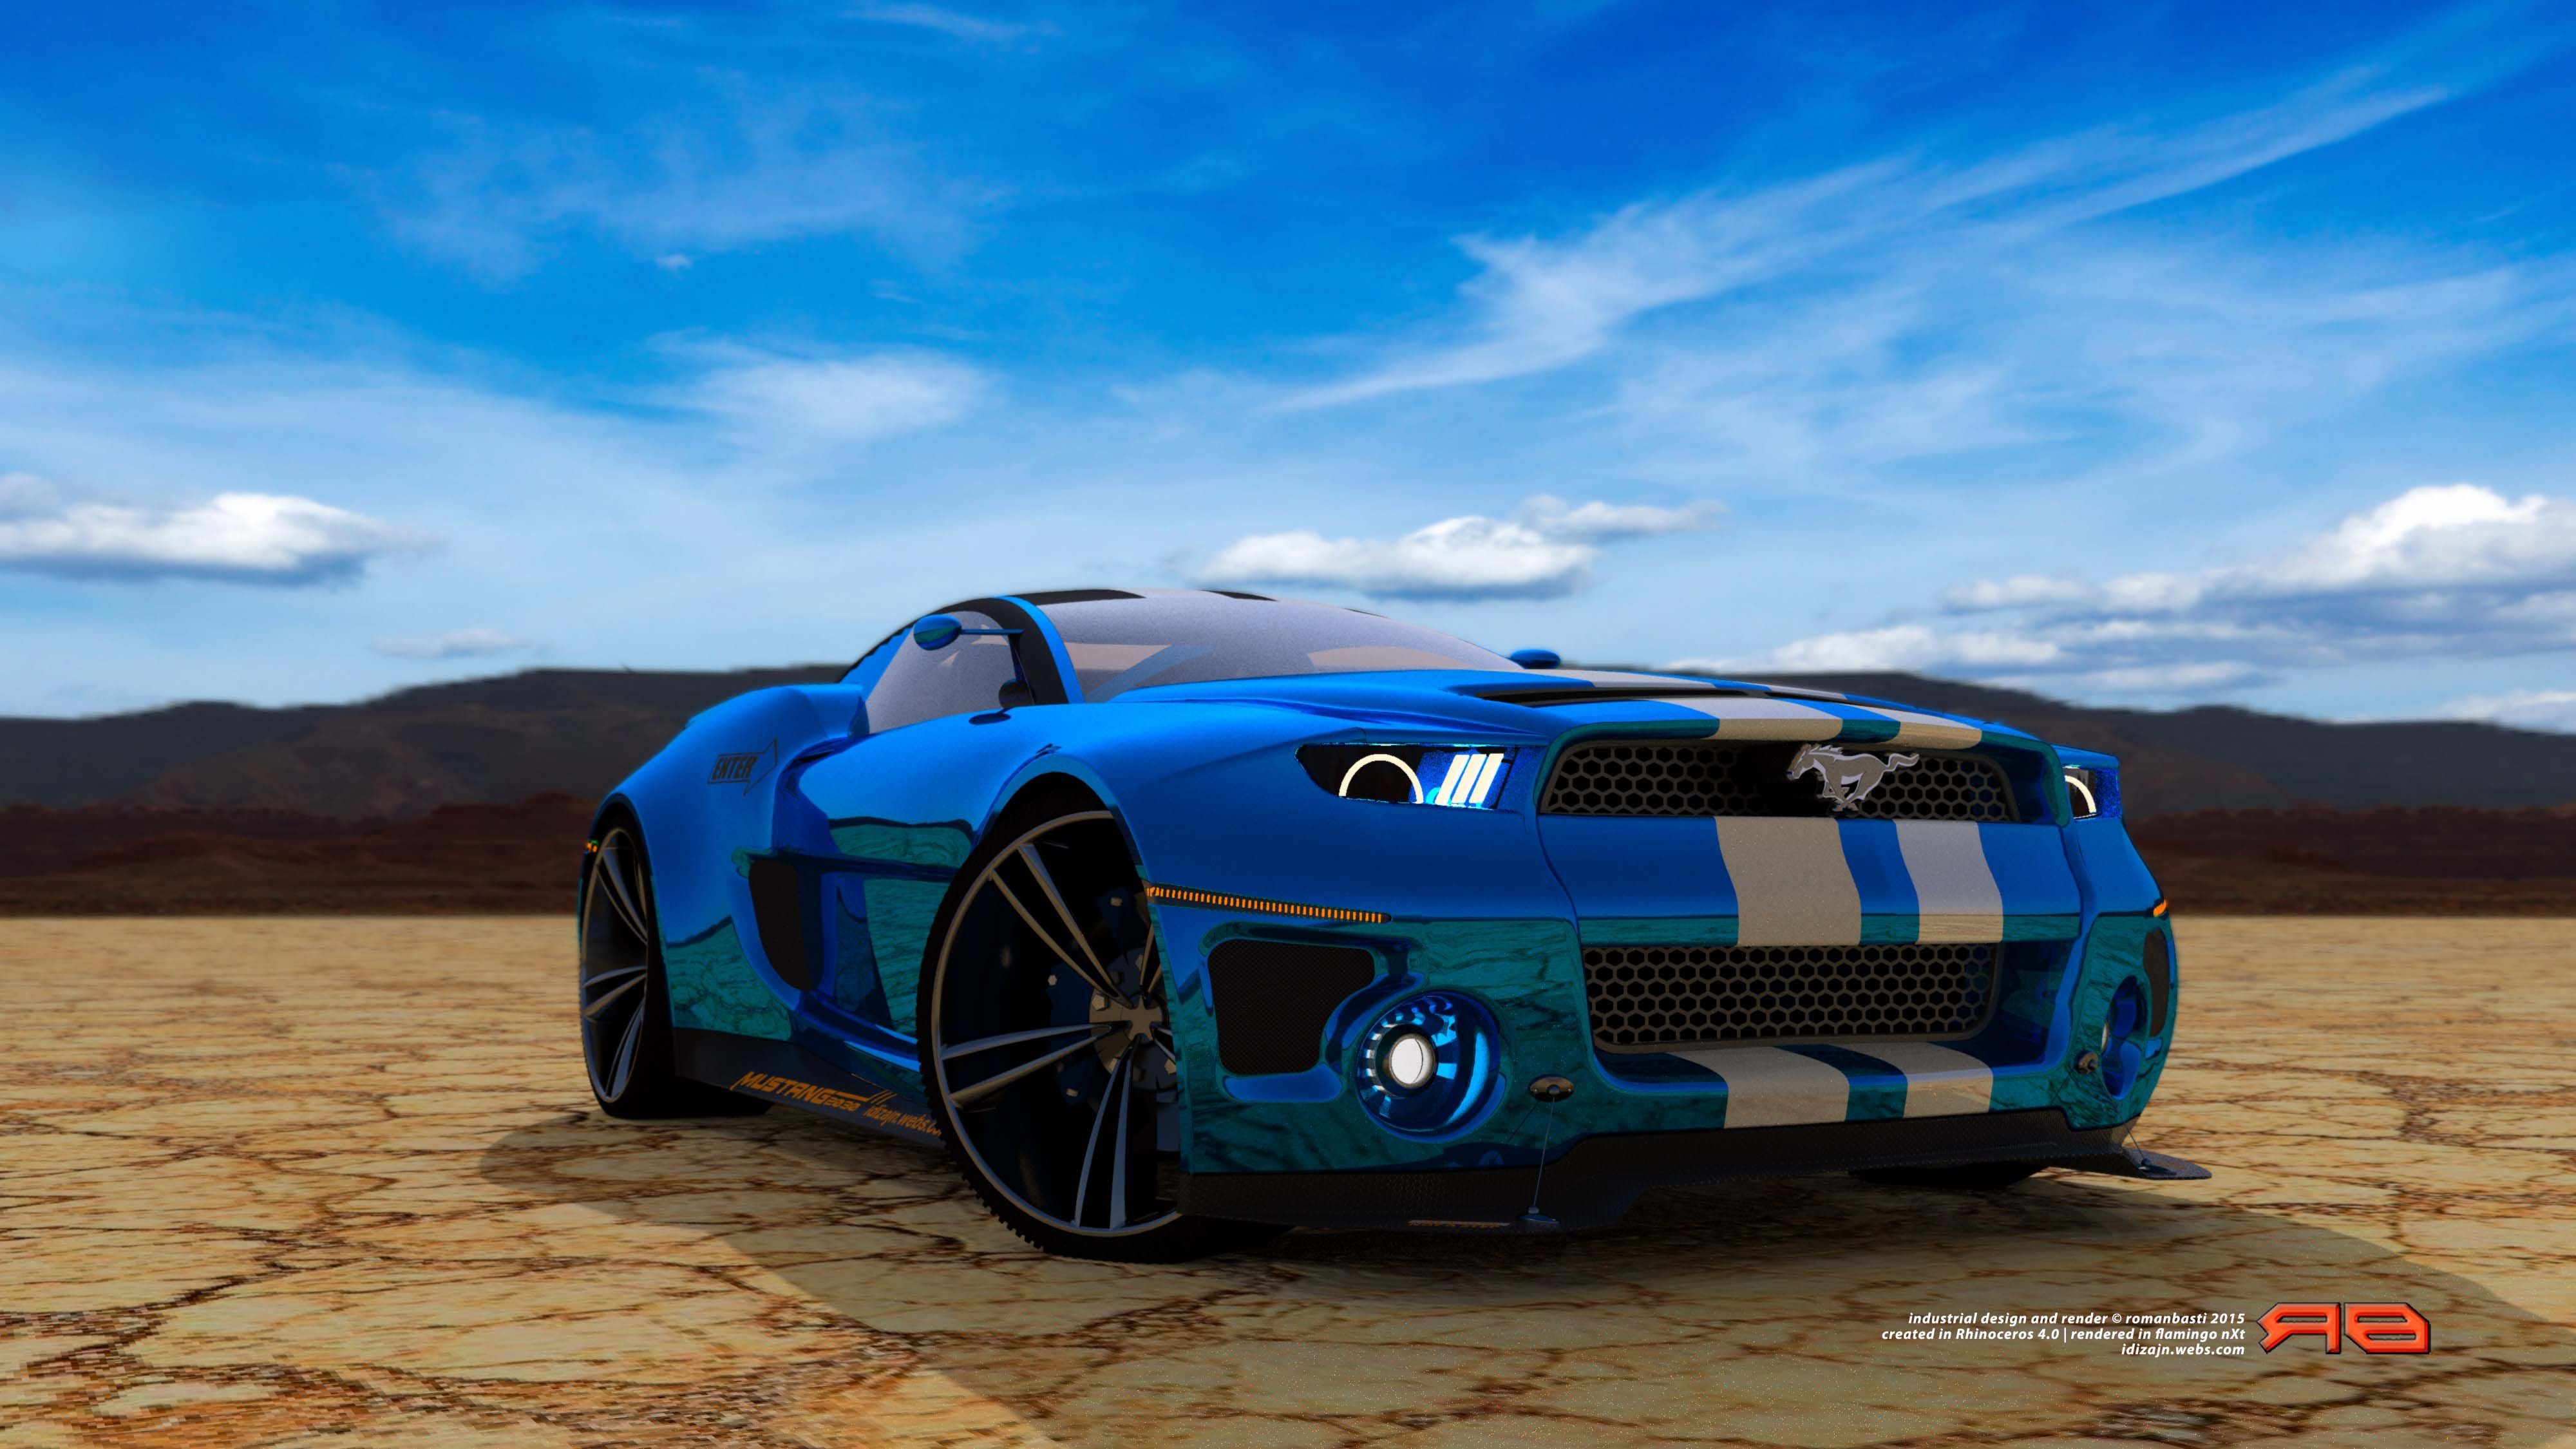 RB_Mustang2030_concept